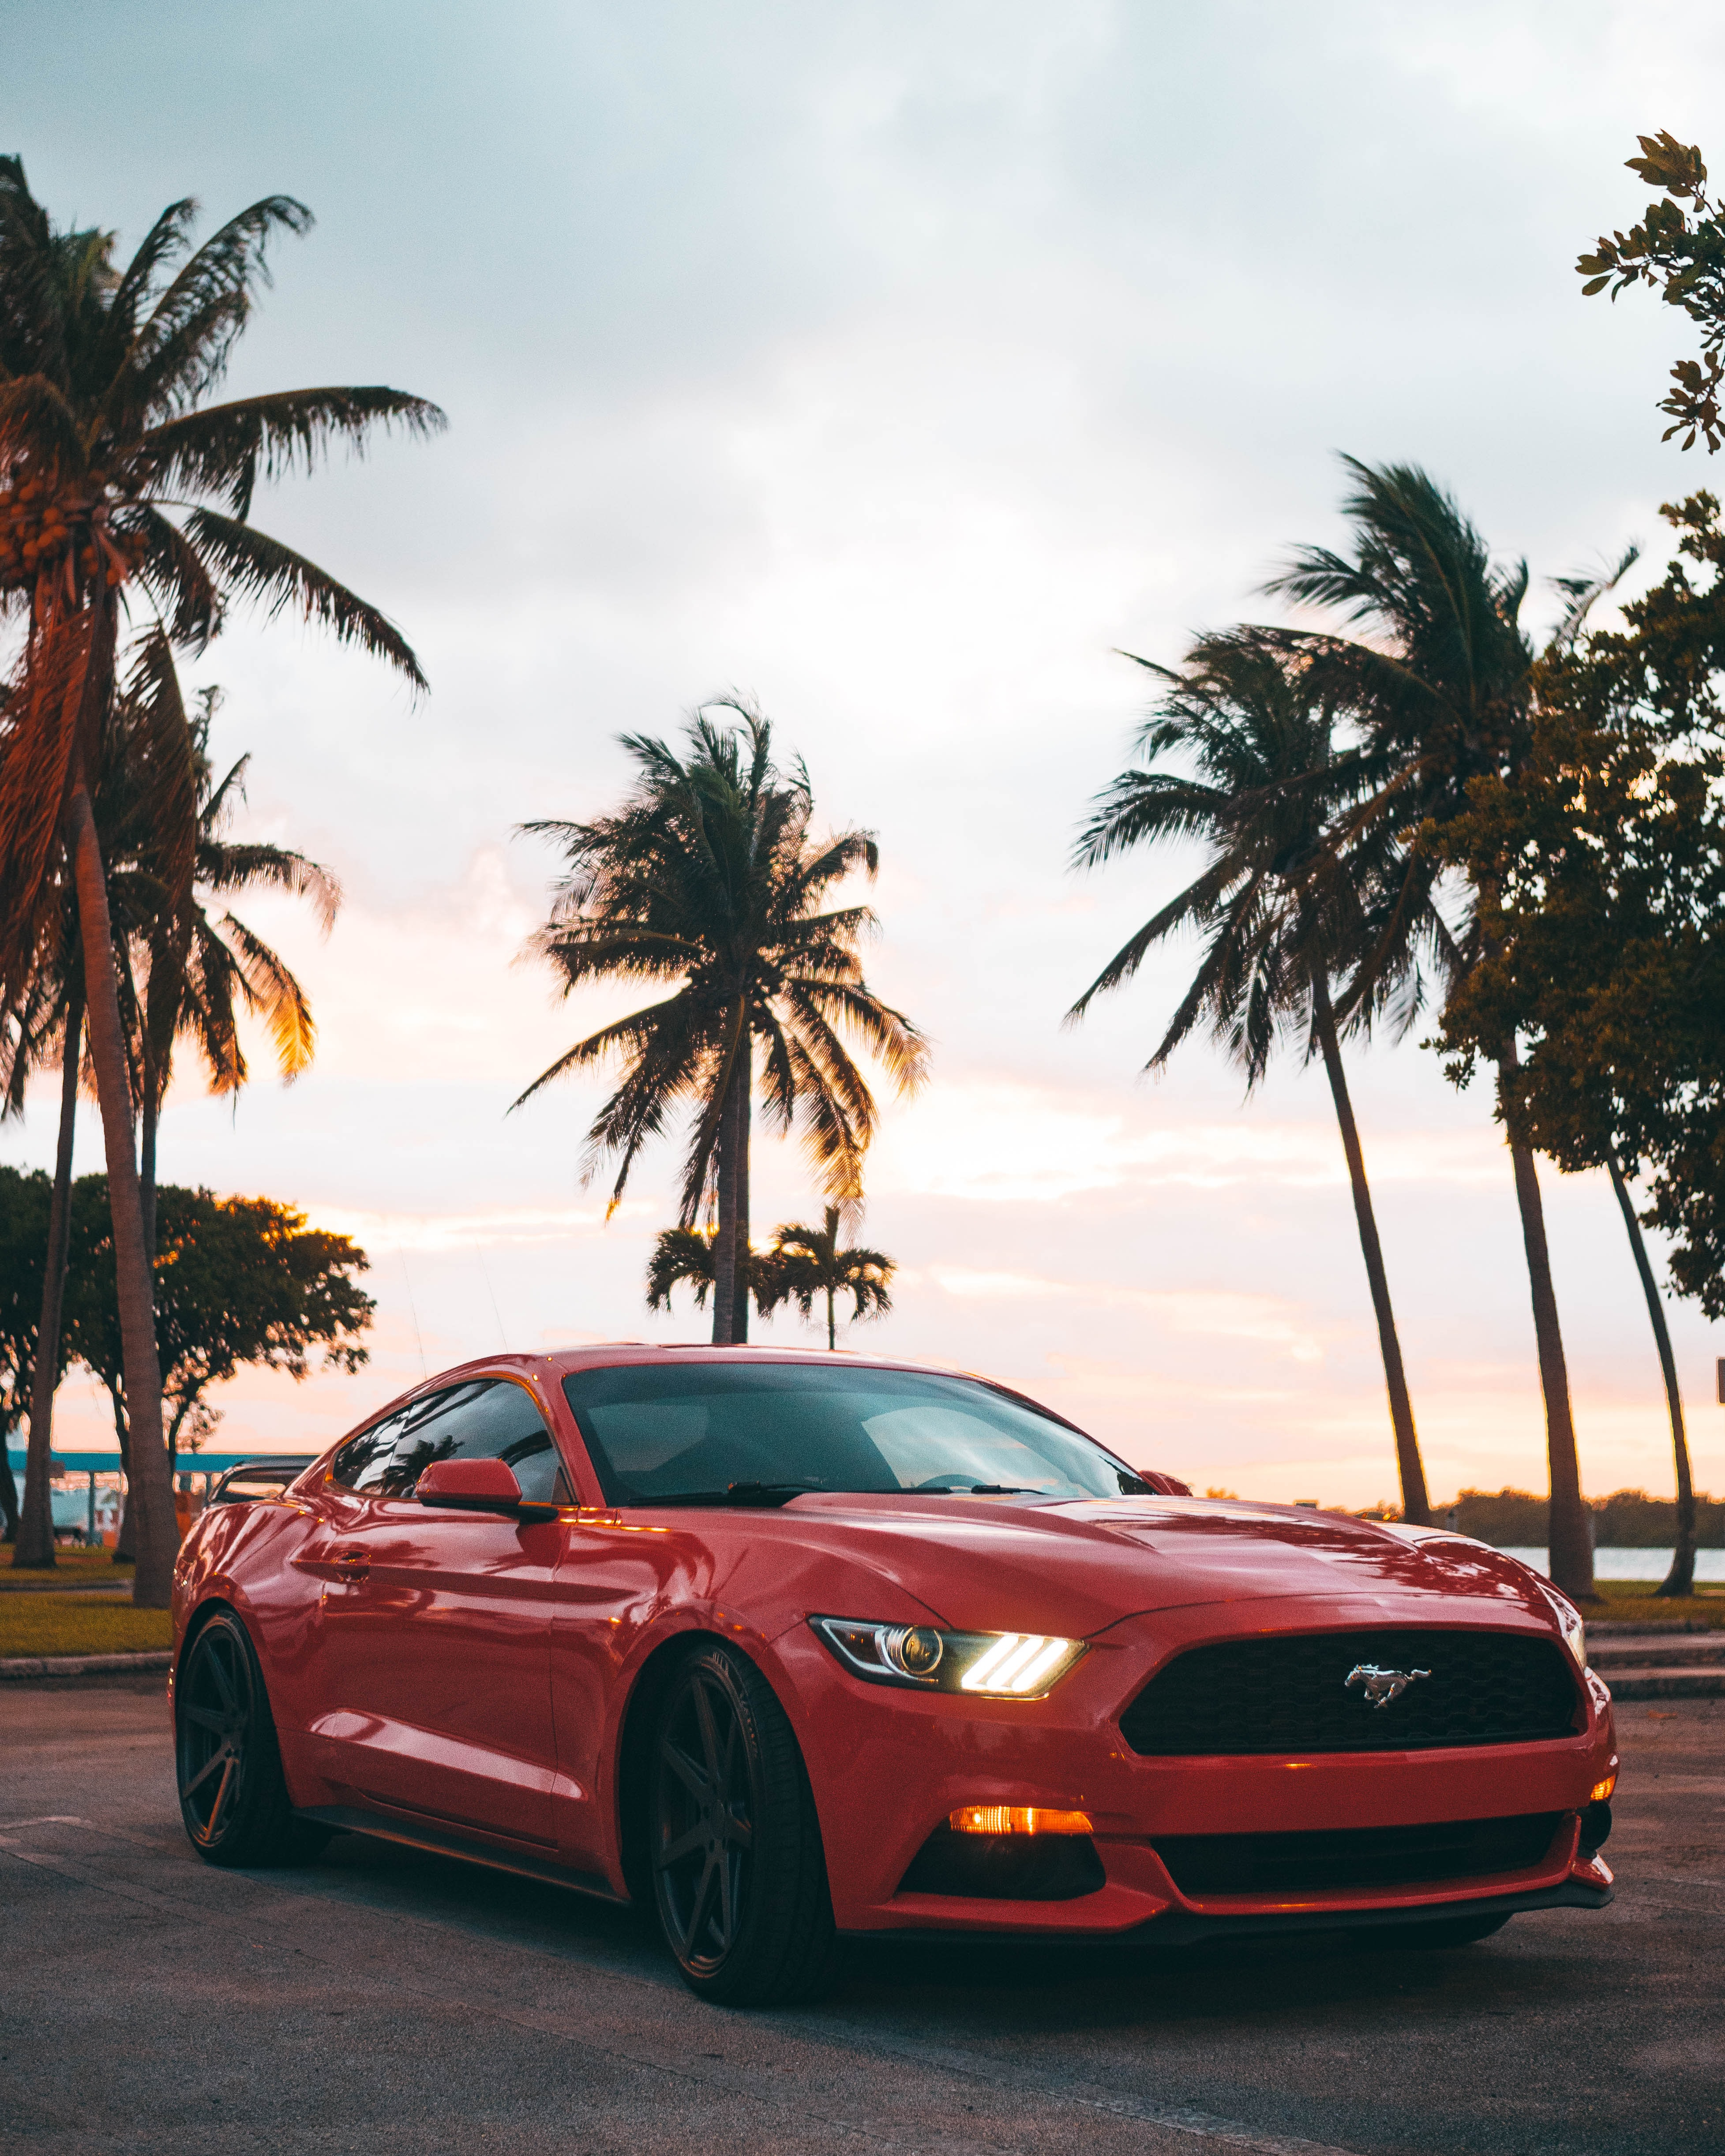 135288 download wallpaper Sports, Mustang, Cars, Car, Machine, Sports Car screensavers and pictures for free